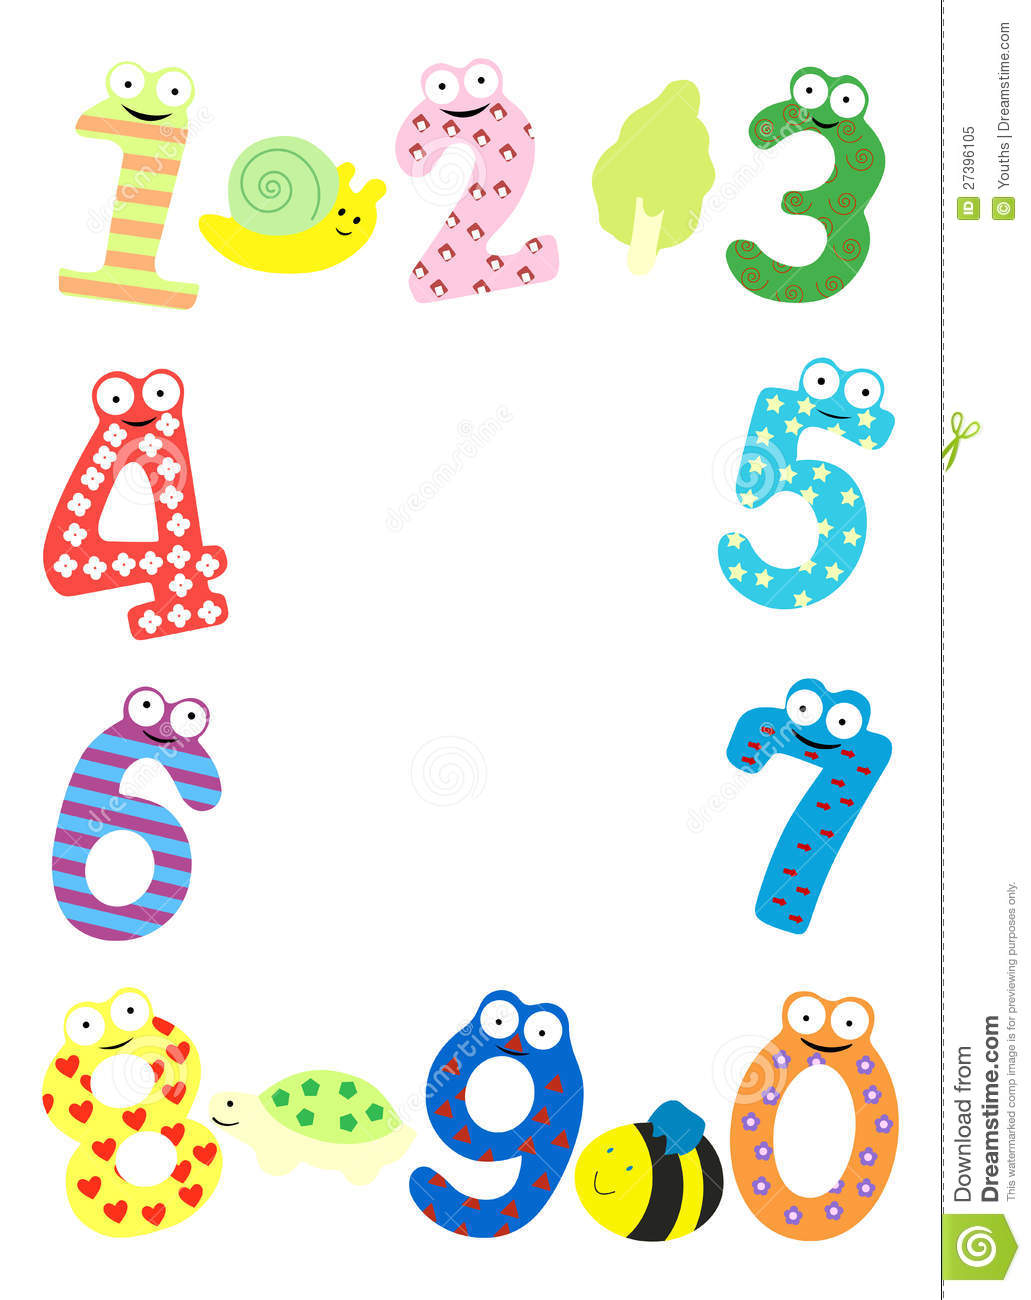 Eyeglasses Frame Numbers : Funny Number Frame Royalty Free Stock Photo - Image: 27396105